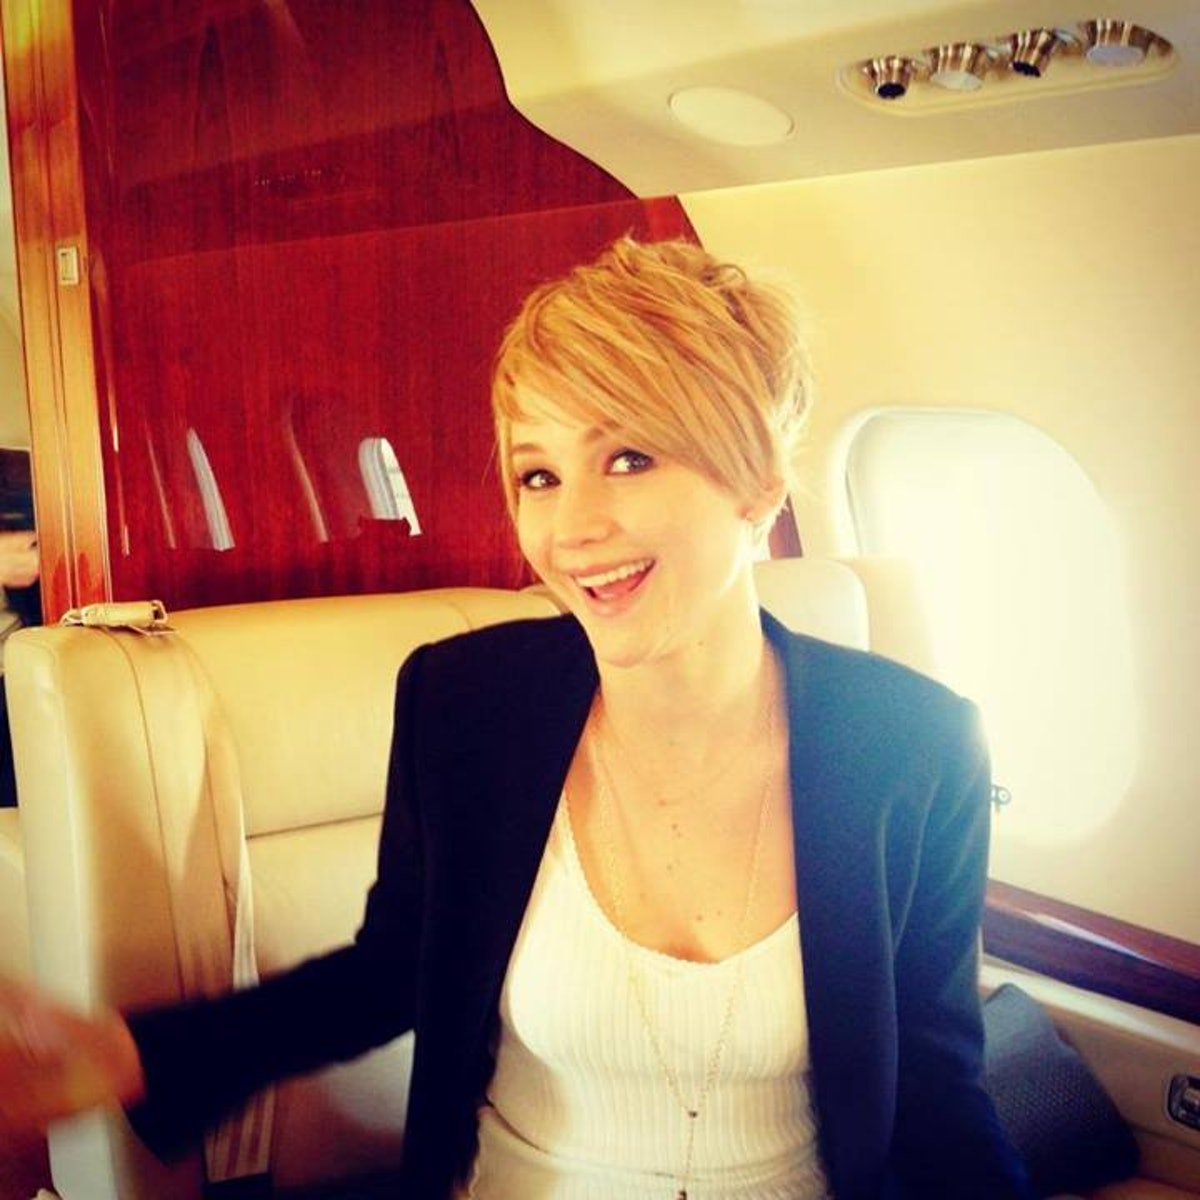 Jennifer Lawrence posted this image on her Facebook page.